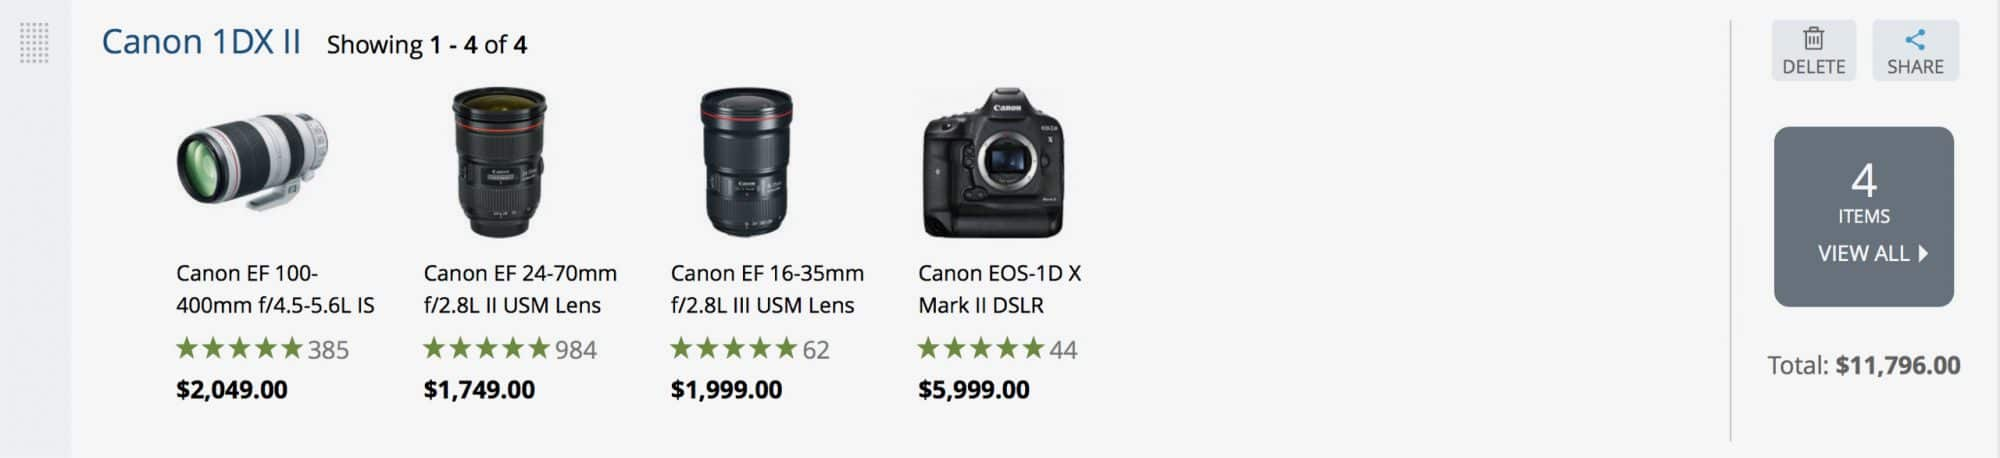 Canon 1DX Mark II pricing example